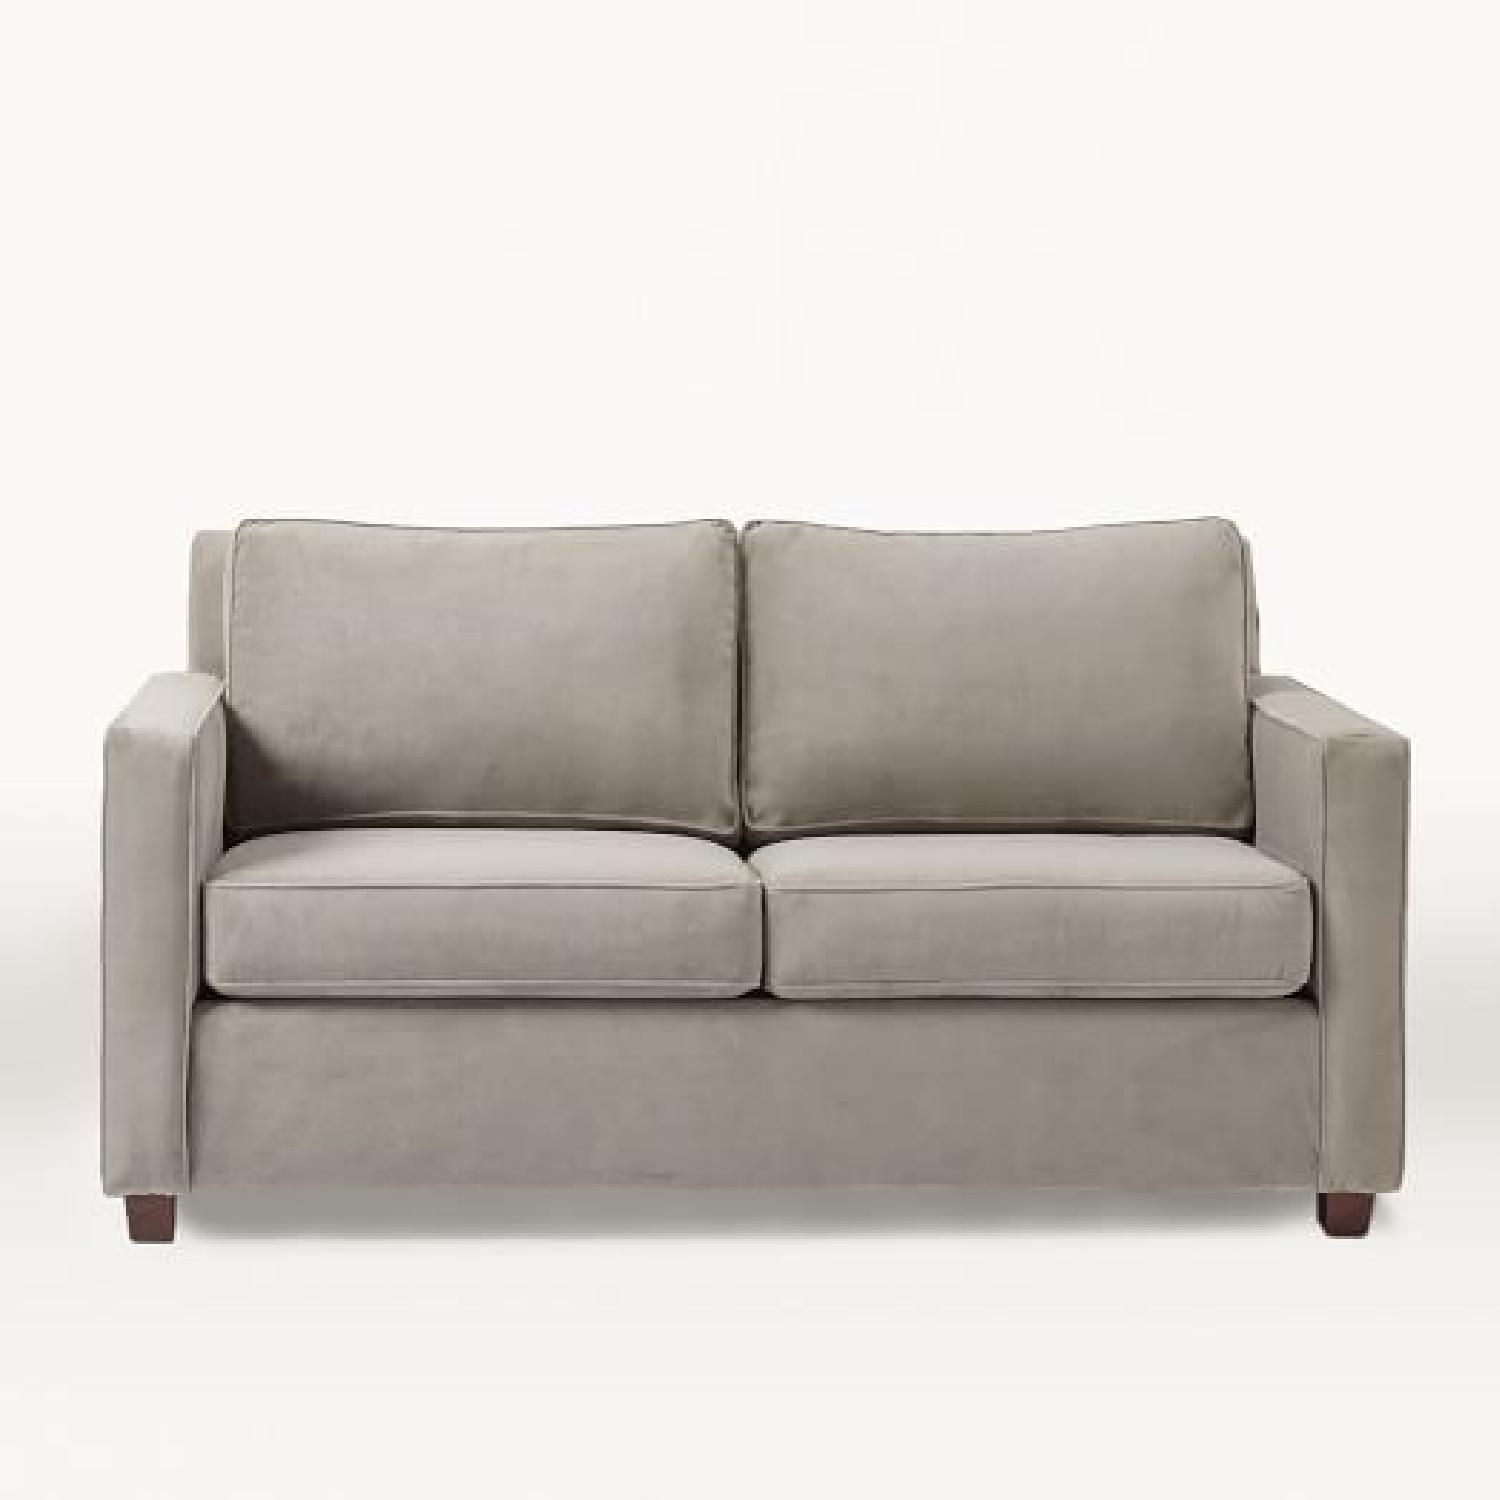 West Elm Henry Basic Queen Sleeper Sofa ...